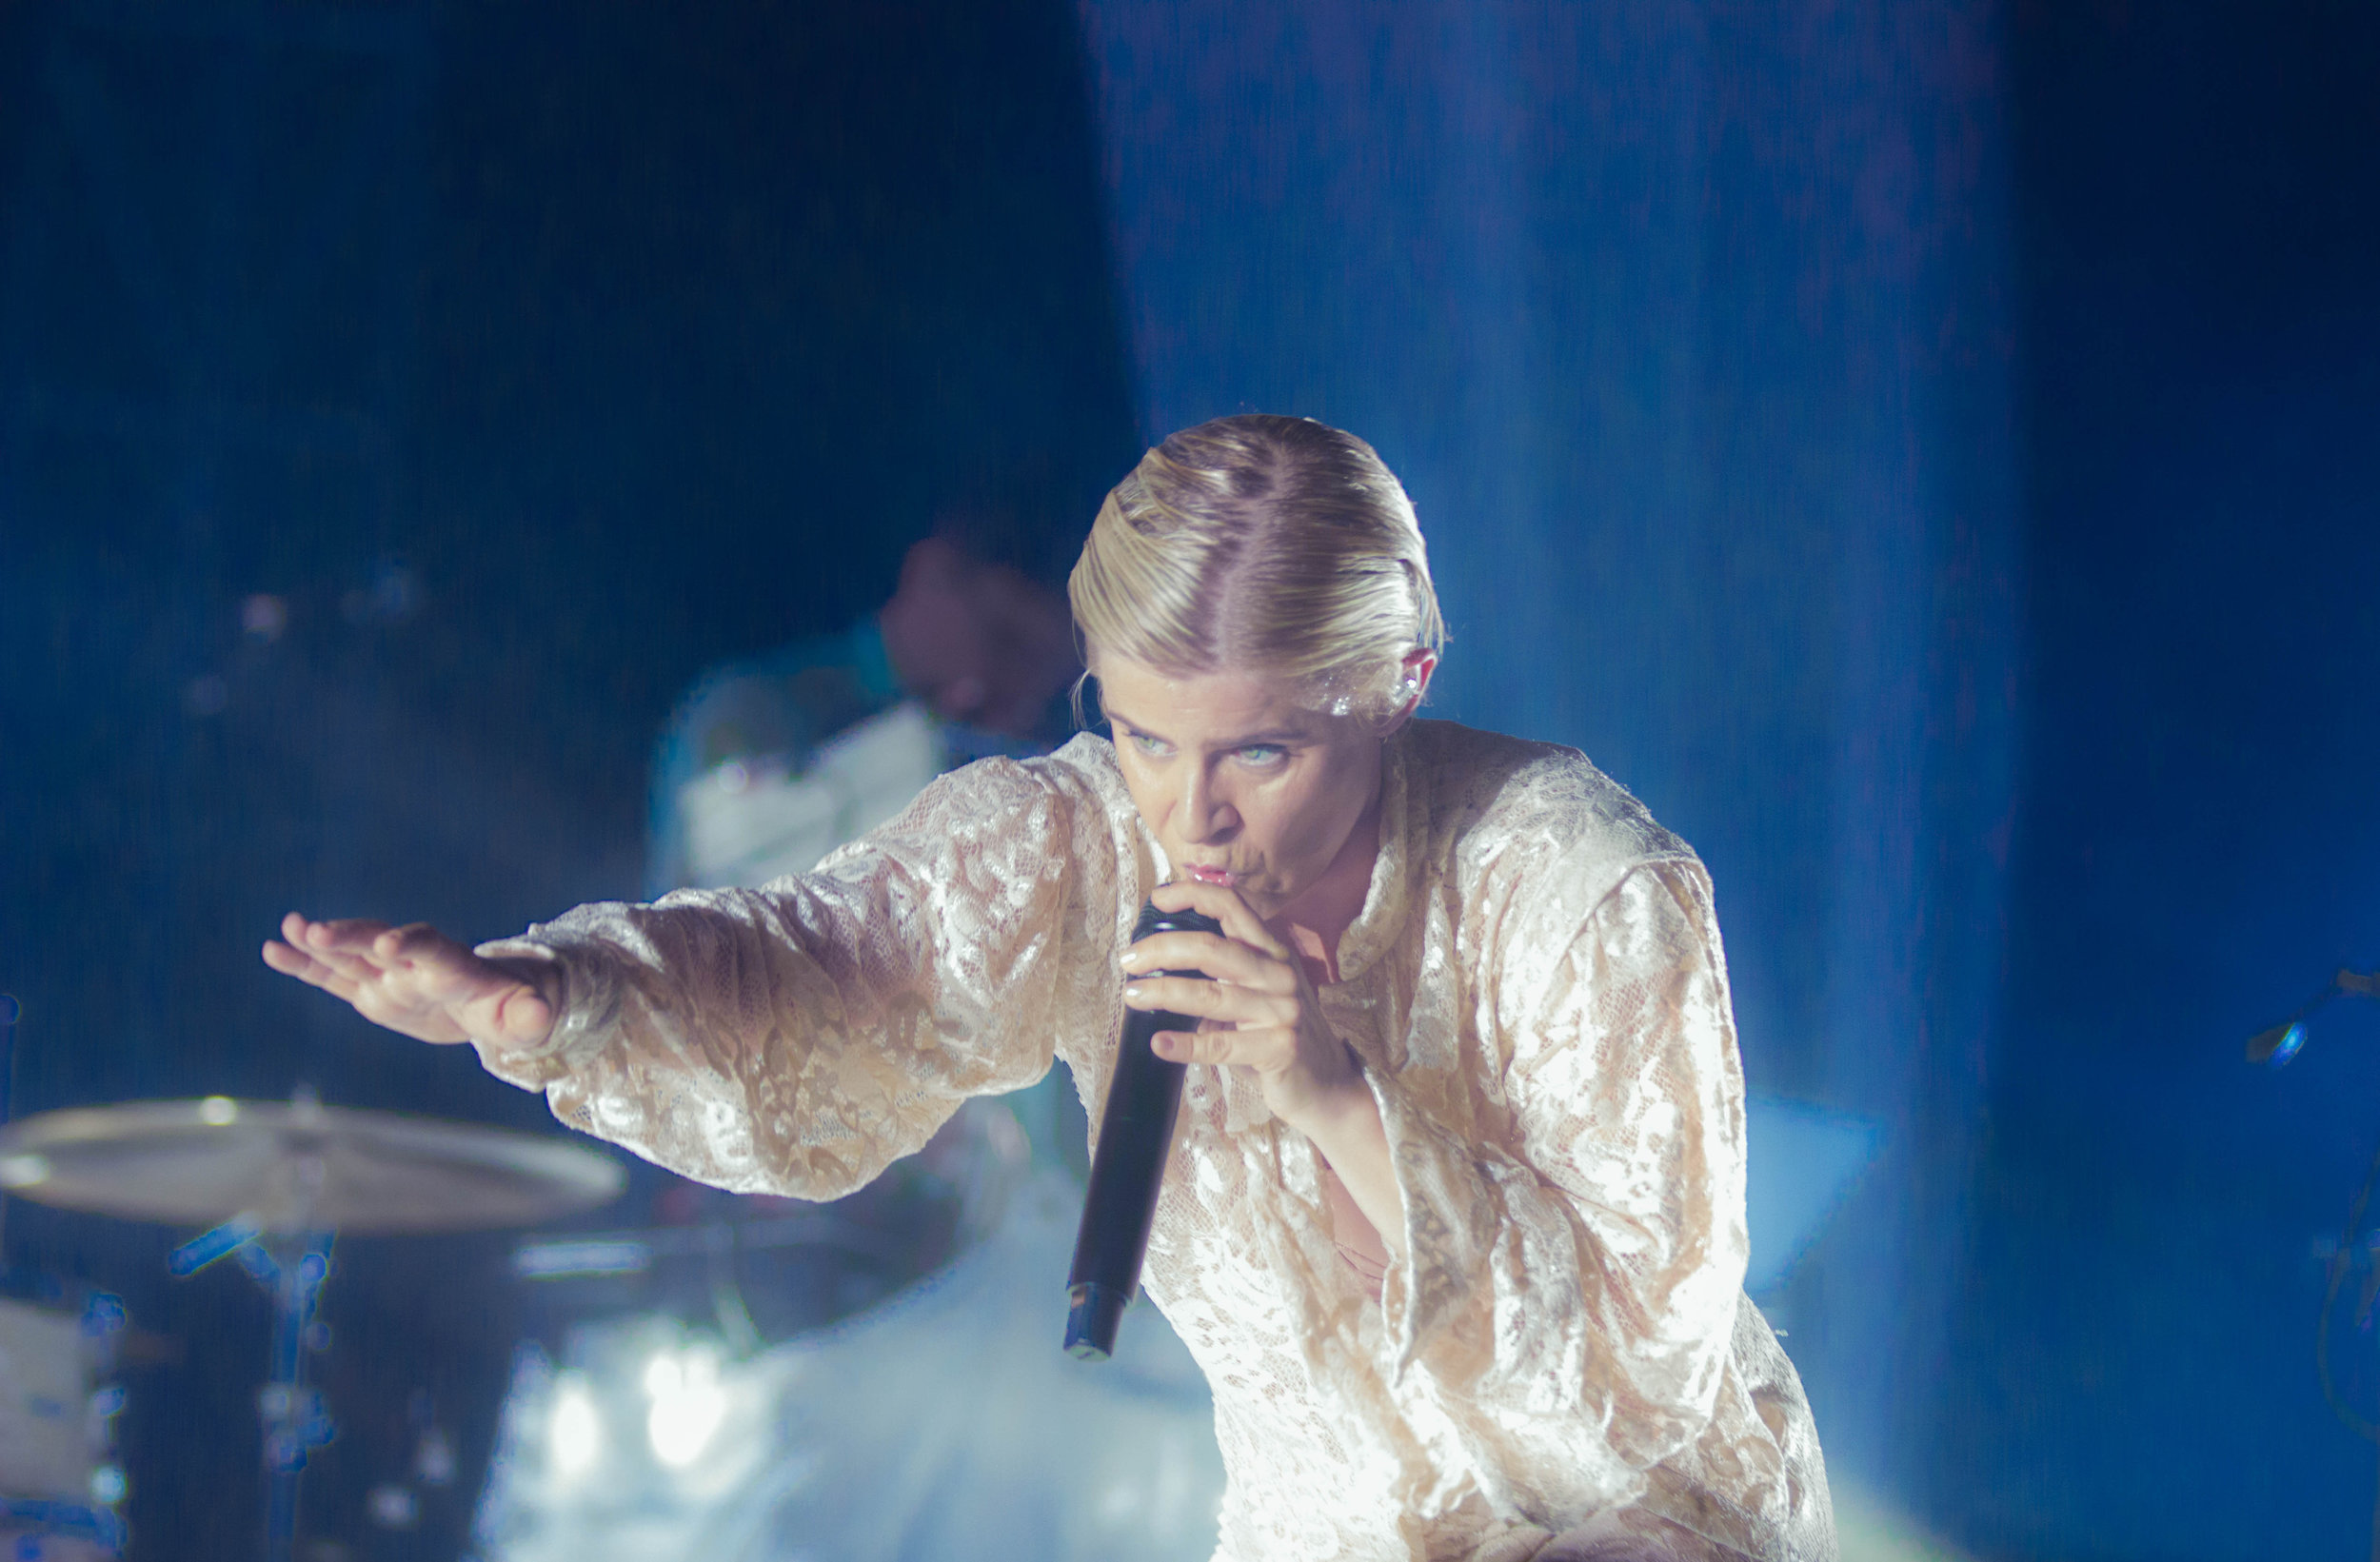 Robyn closing out the festival